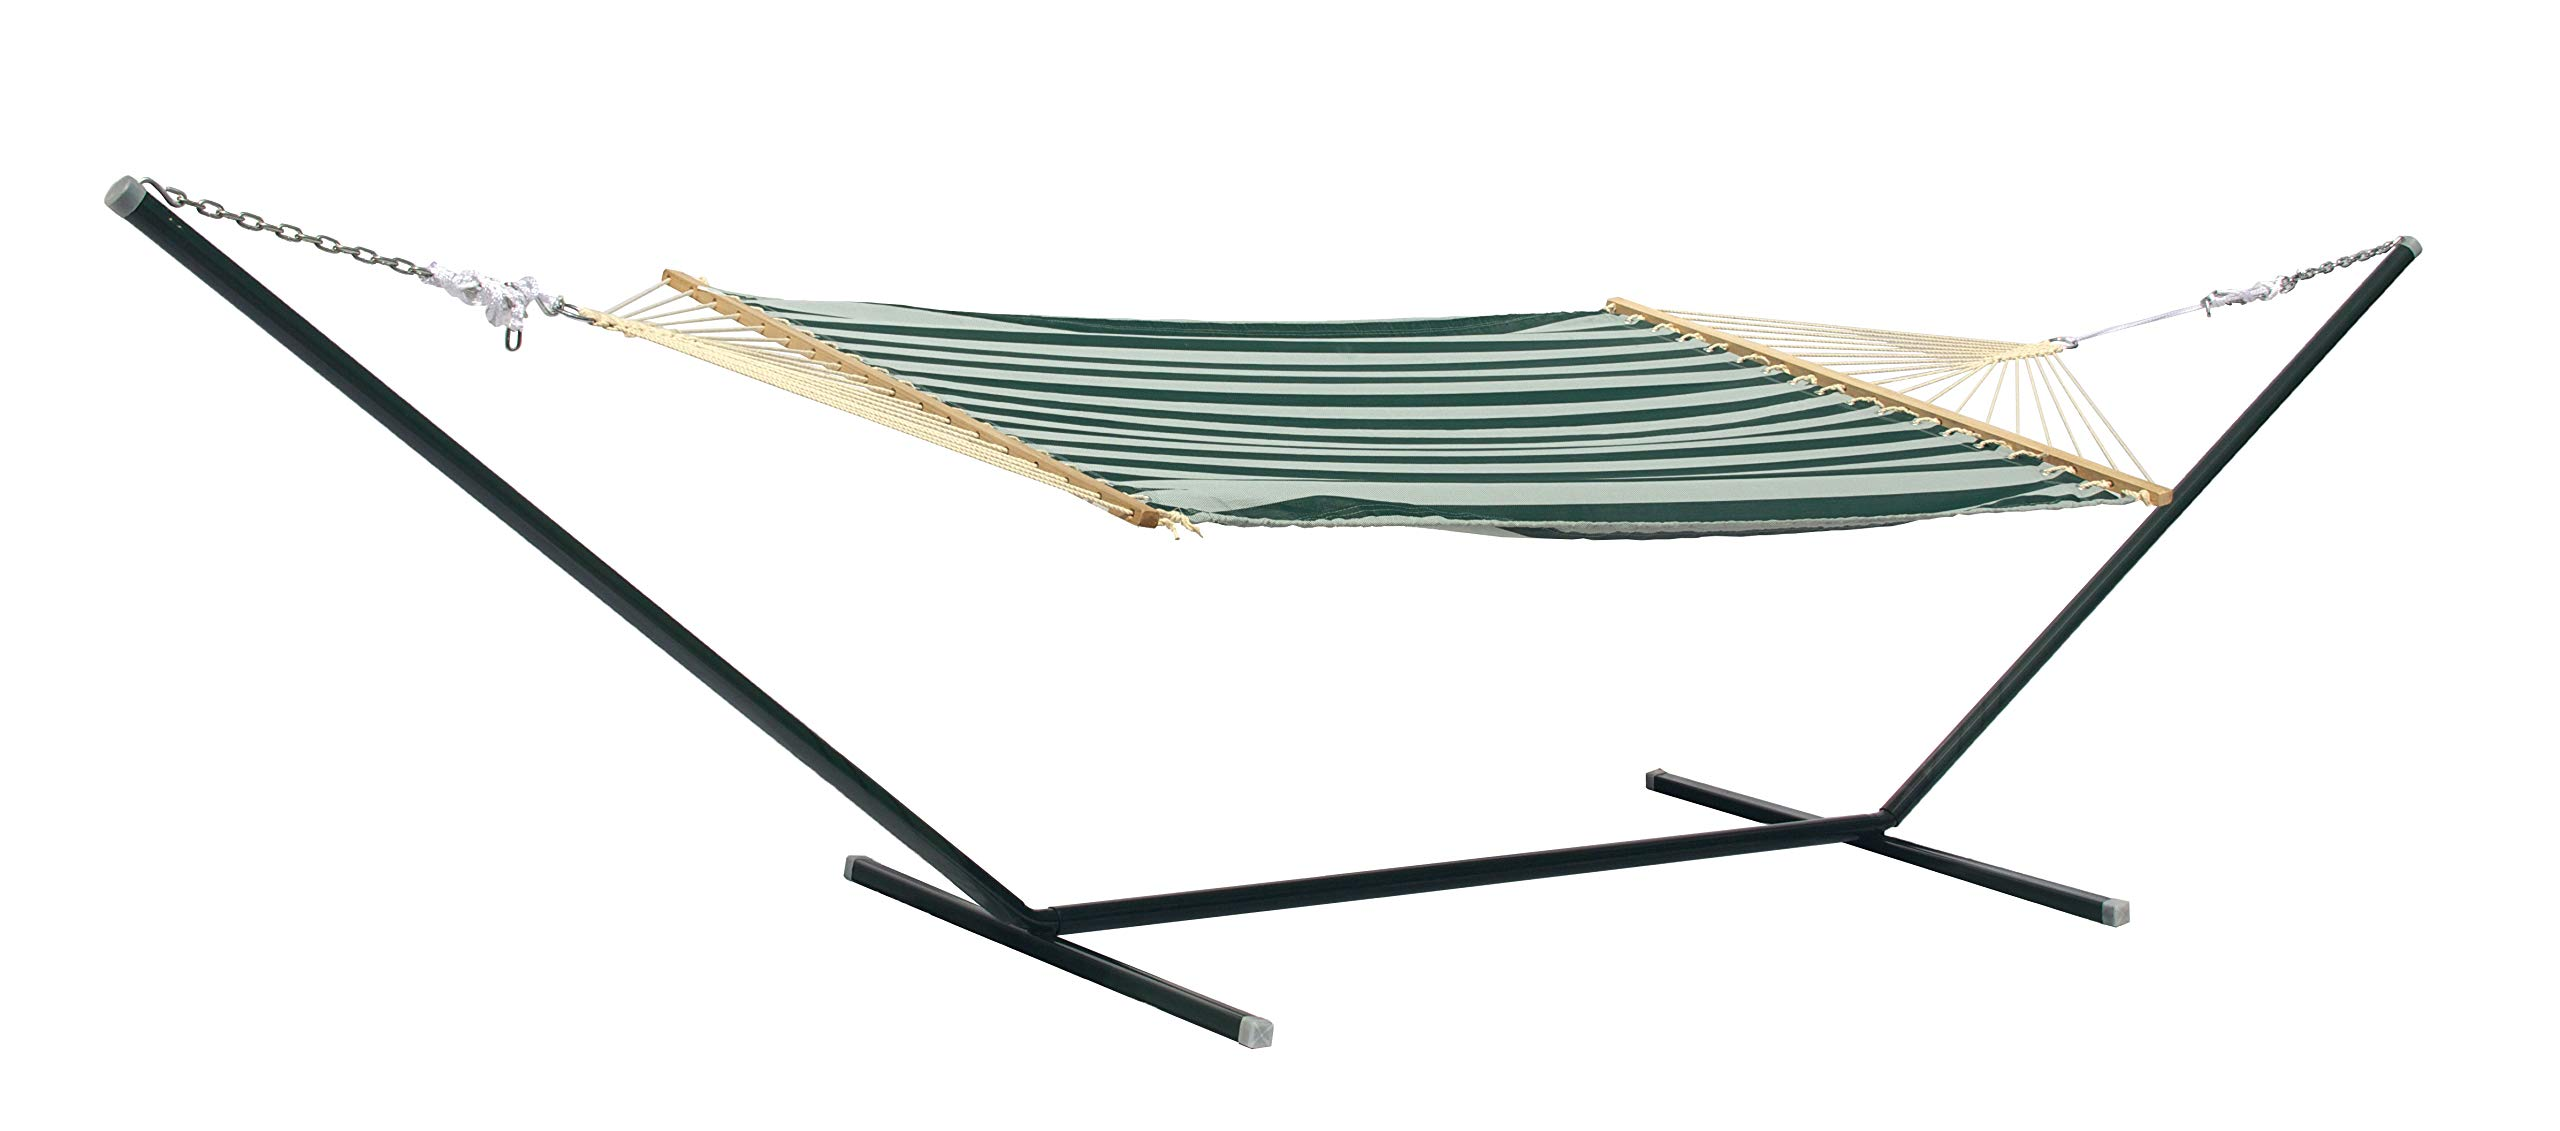 Texsport Sunset Bay Hammock with Stand Easy Set Up